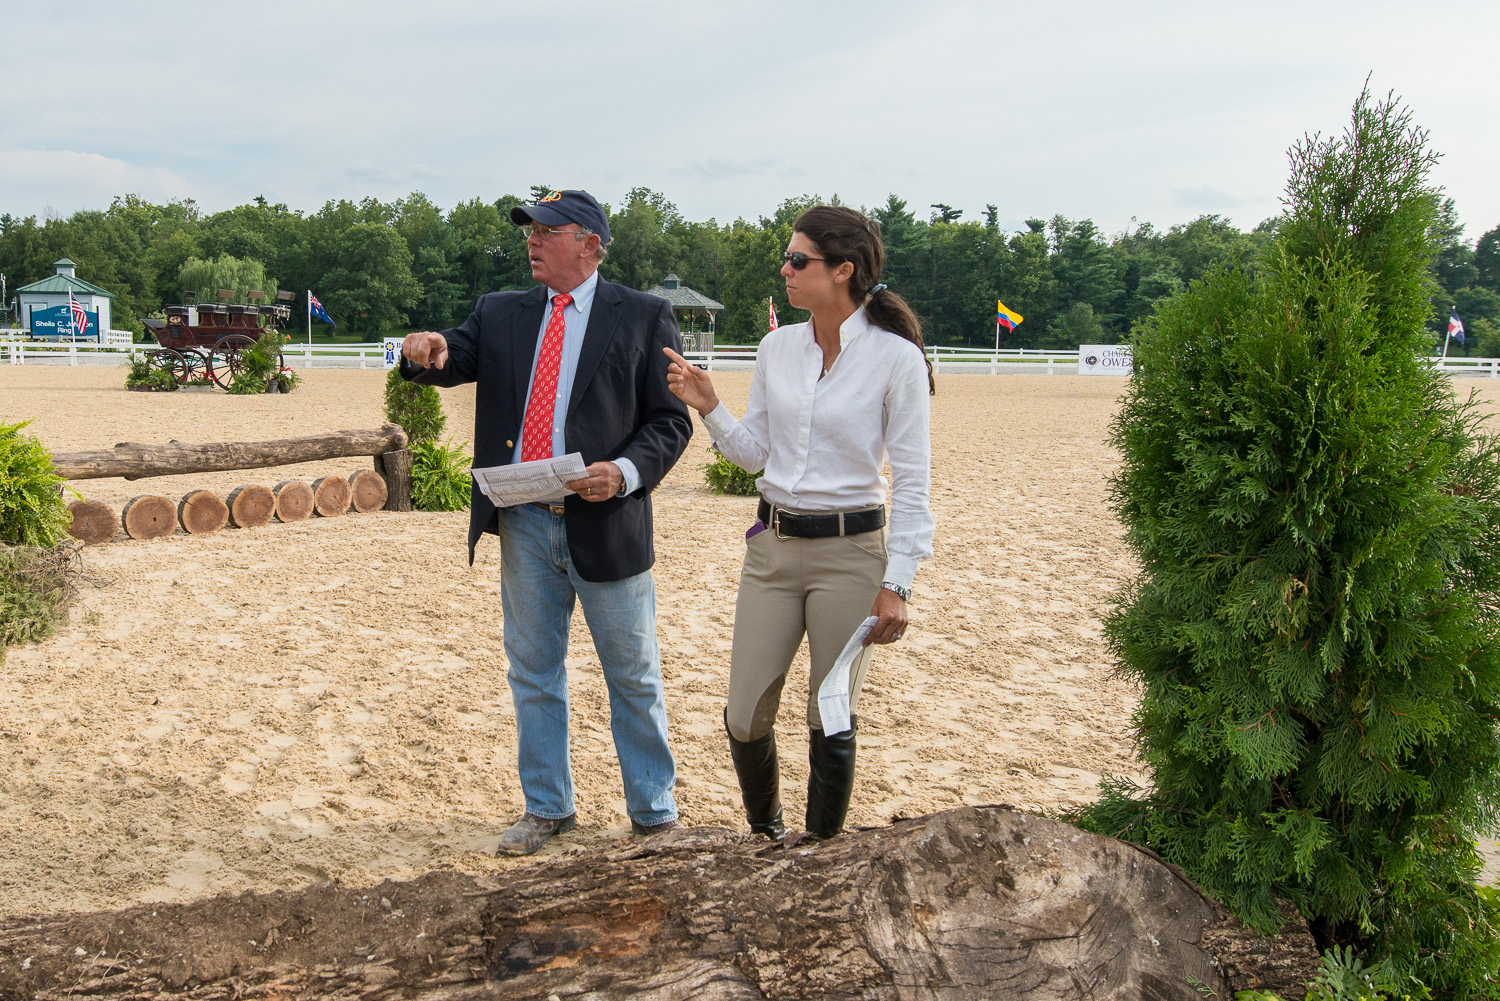 Jack Towell and daughter Liza Boyd walking the course during the 2013 USHJA International Hunter Derby Championship.